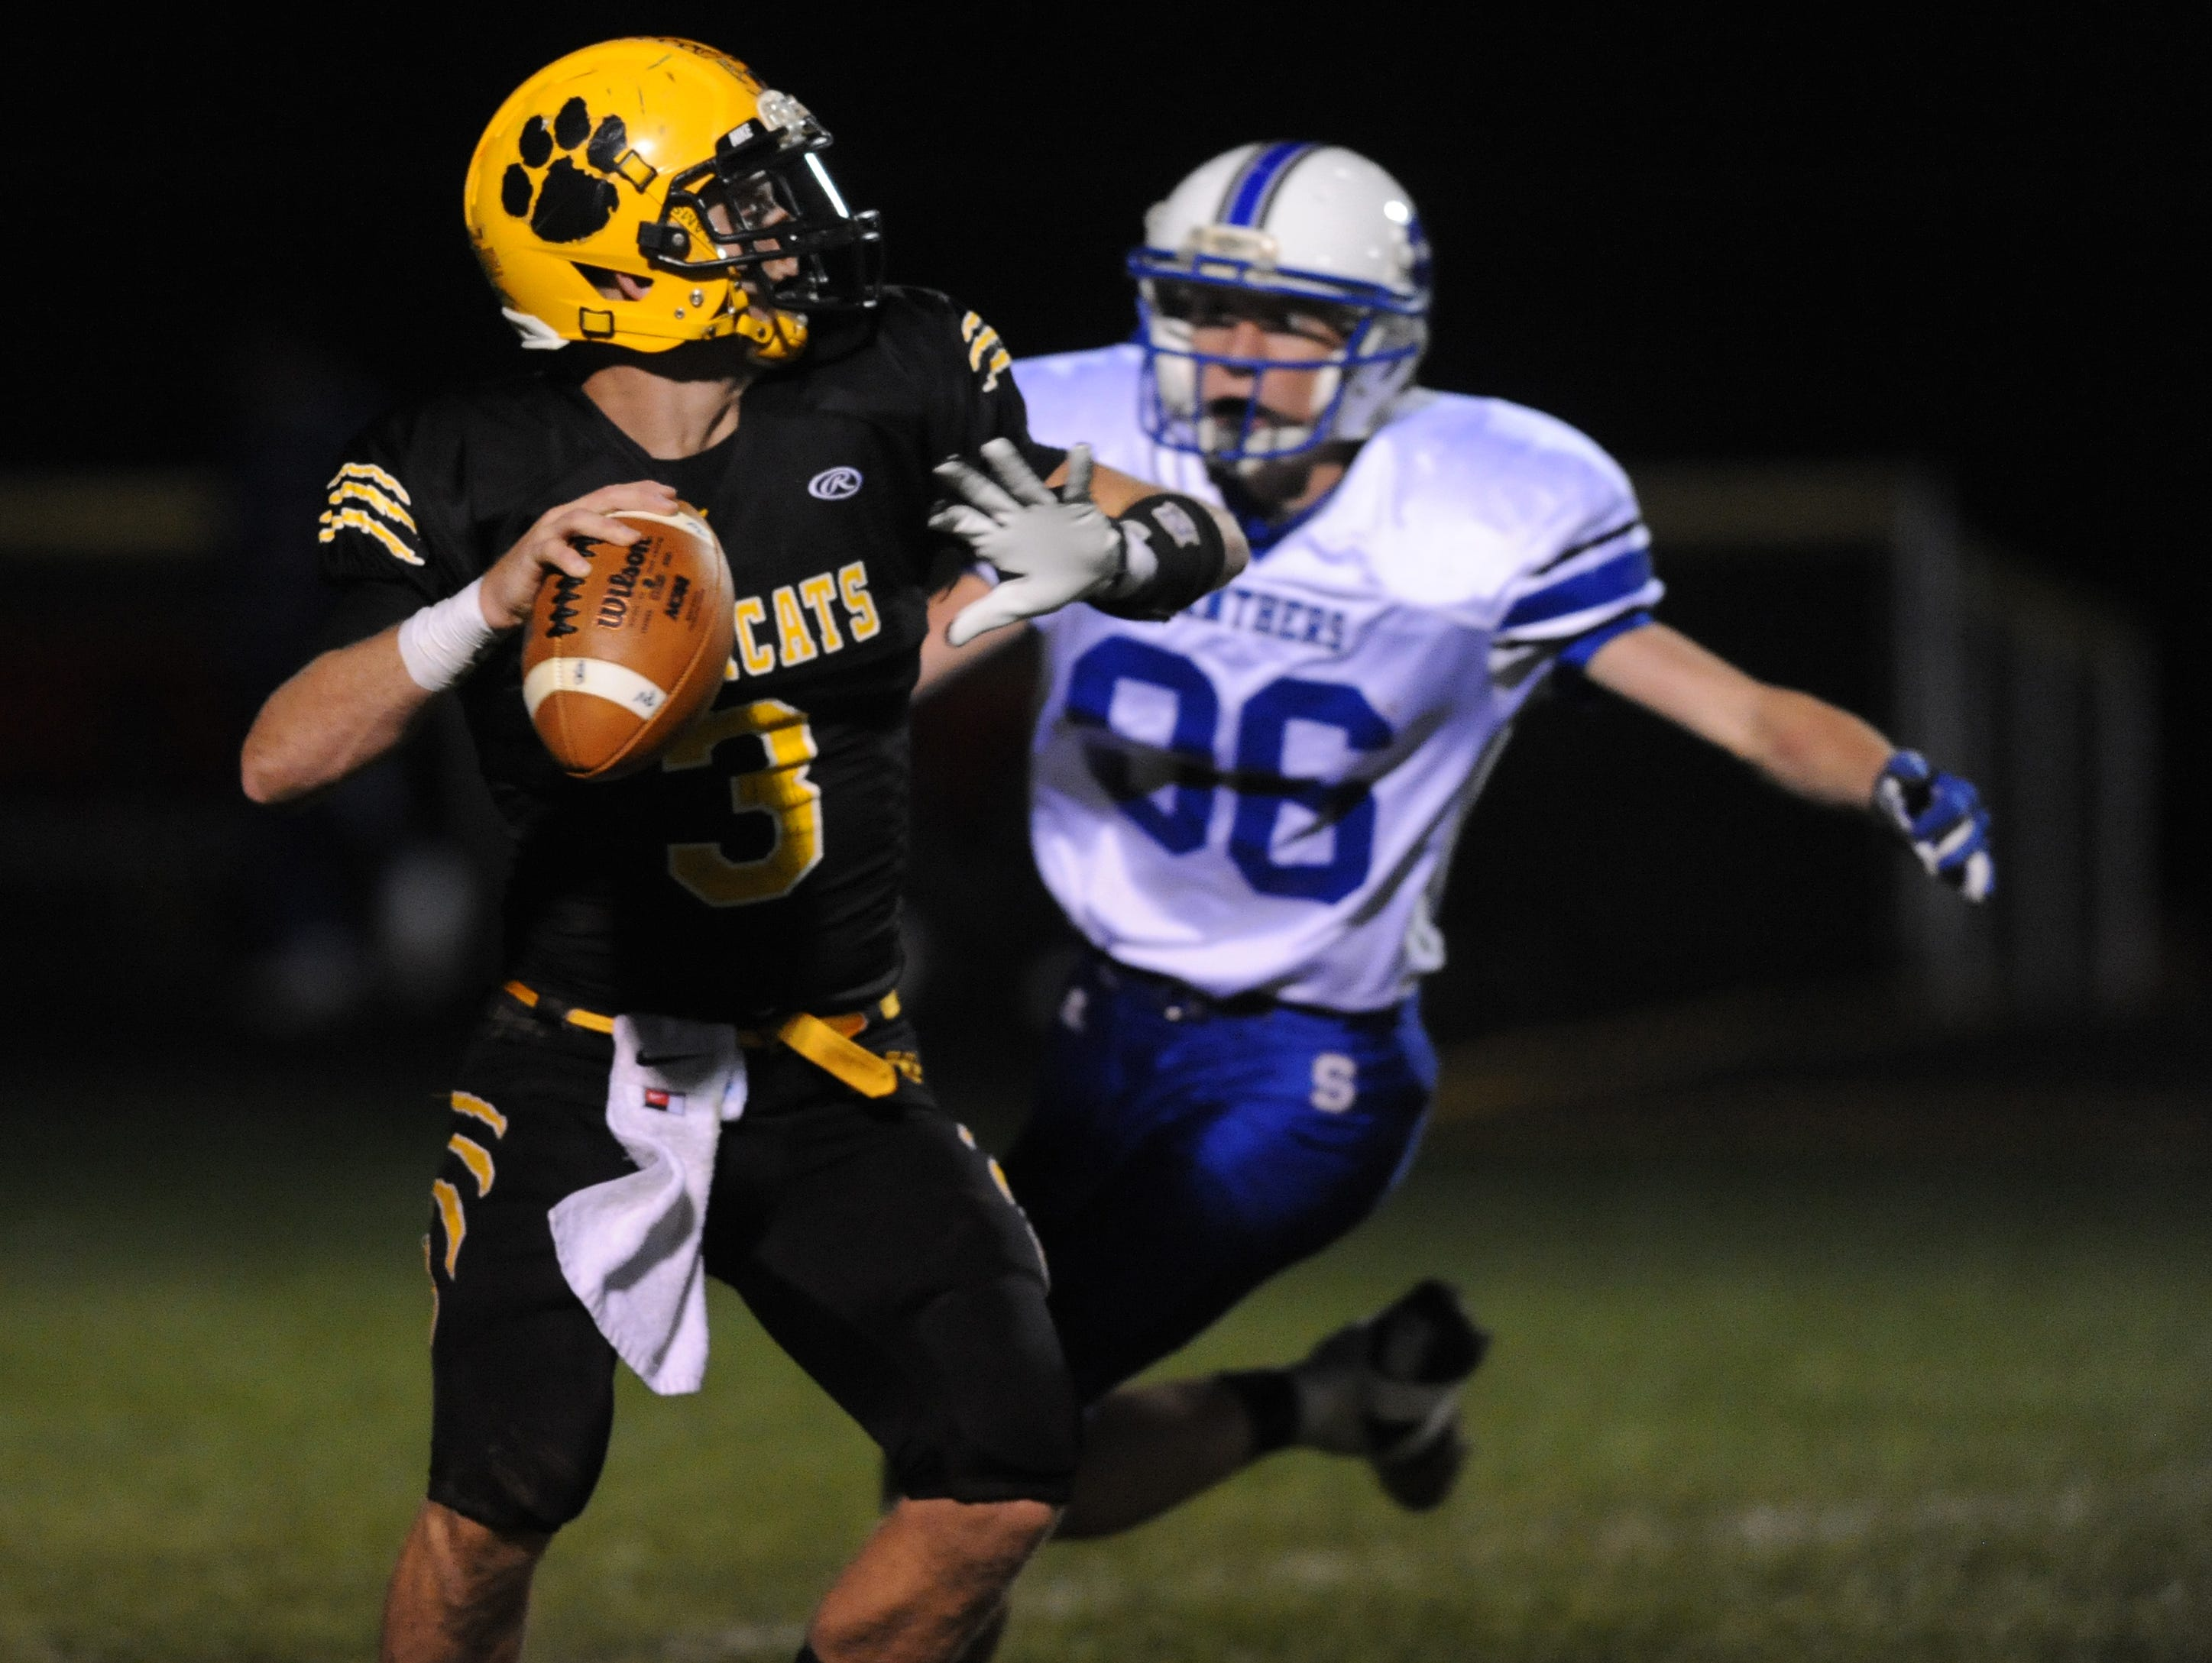 Paint Valley's Anthony McFadden reaches back to throw the ball before Southeastern's Zach Bodary reaches him Friday, Oct. 9, 2015, at Paint Valley High School.